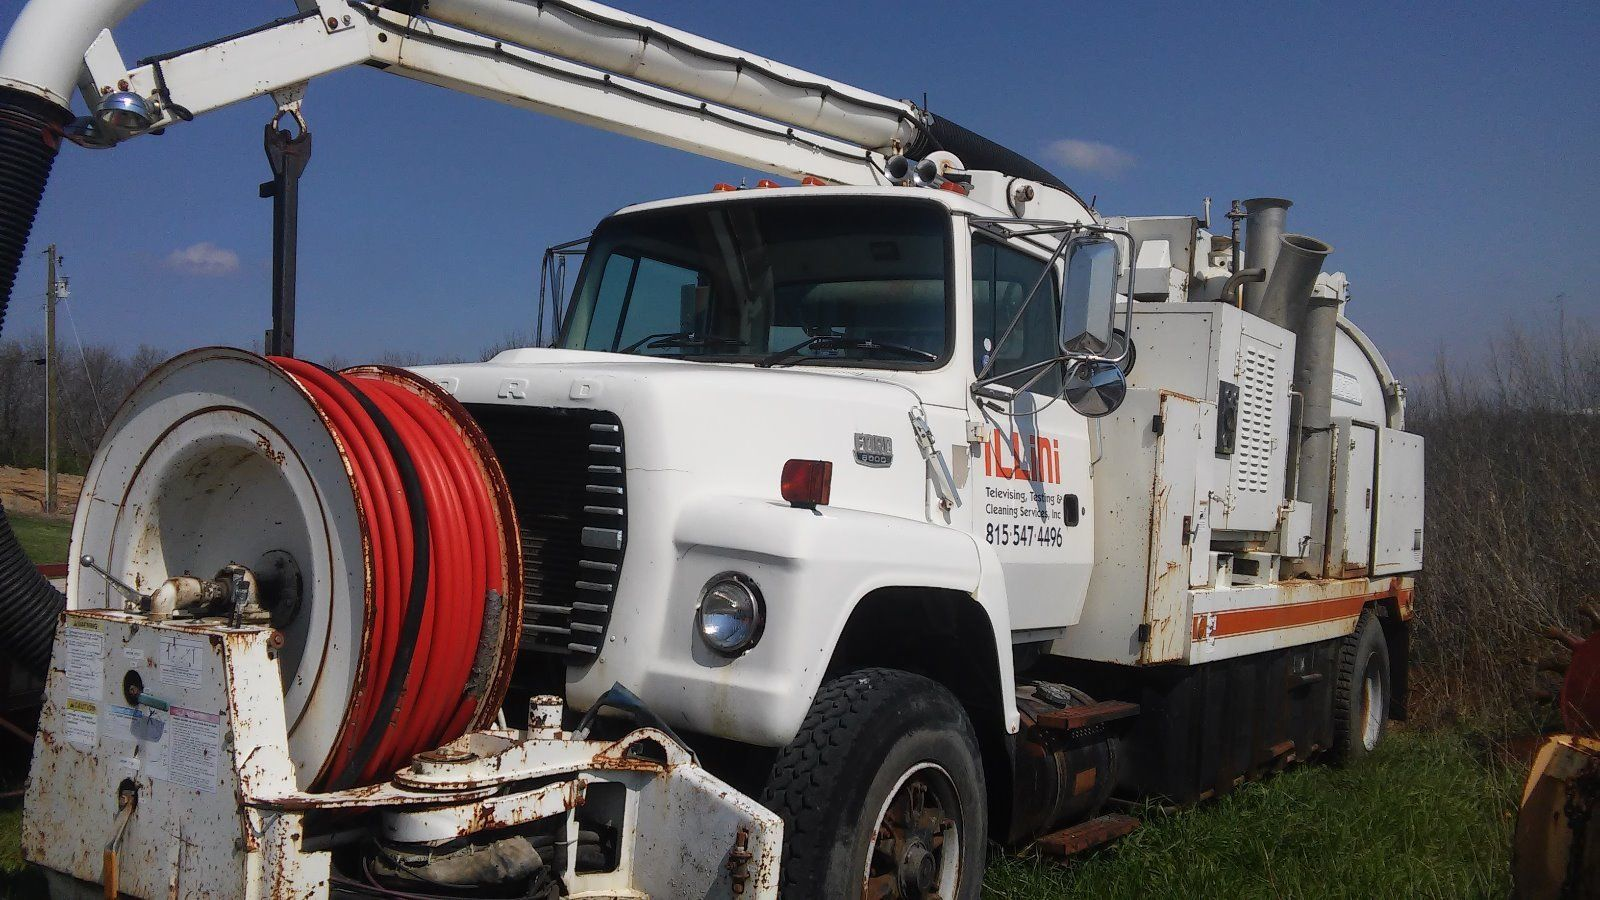 1995 Ford L8000 Vacuum Truck for sale